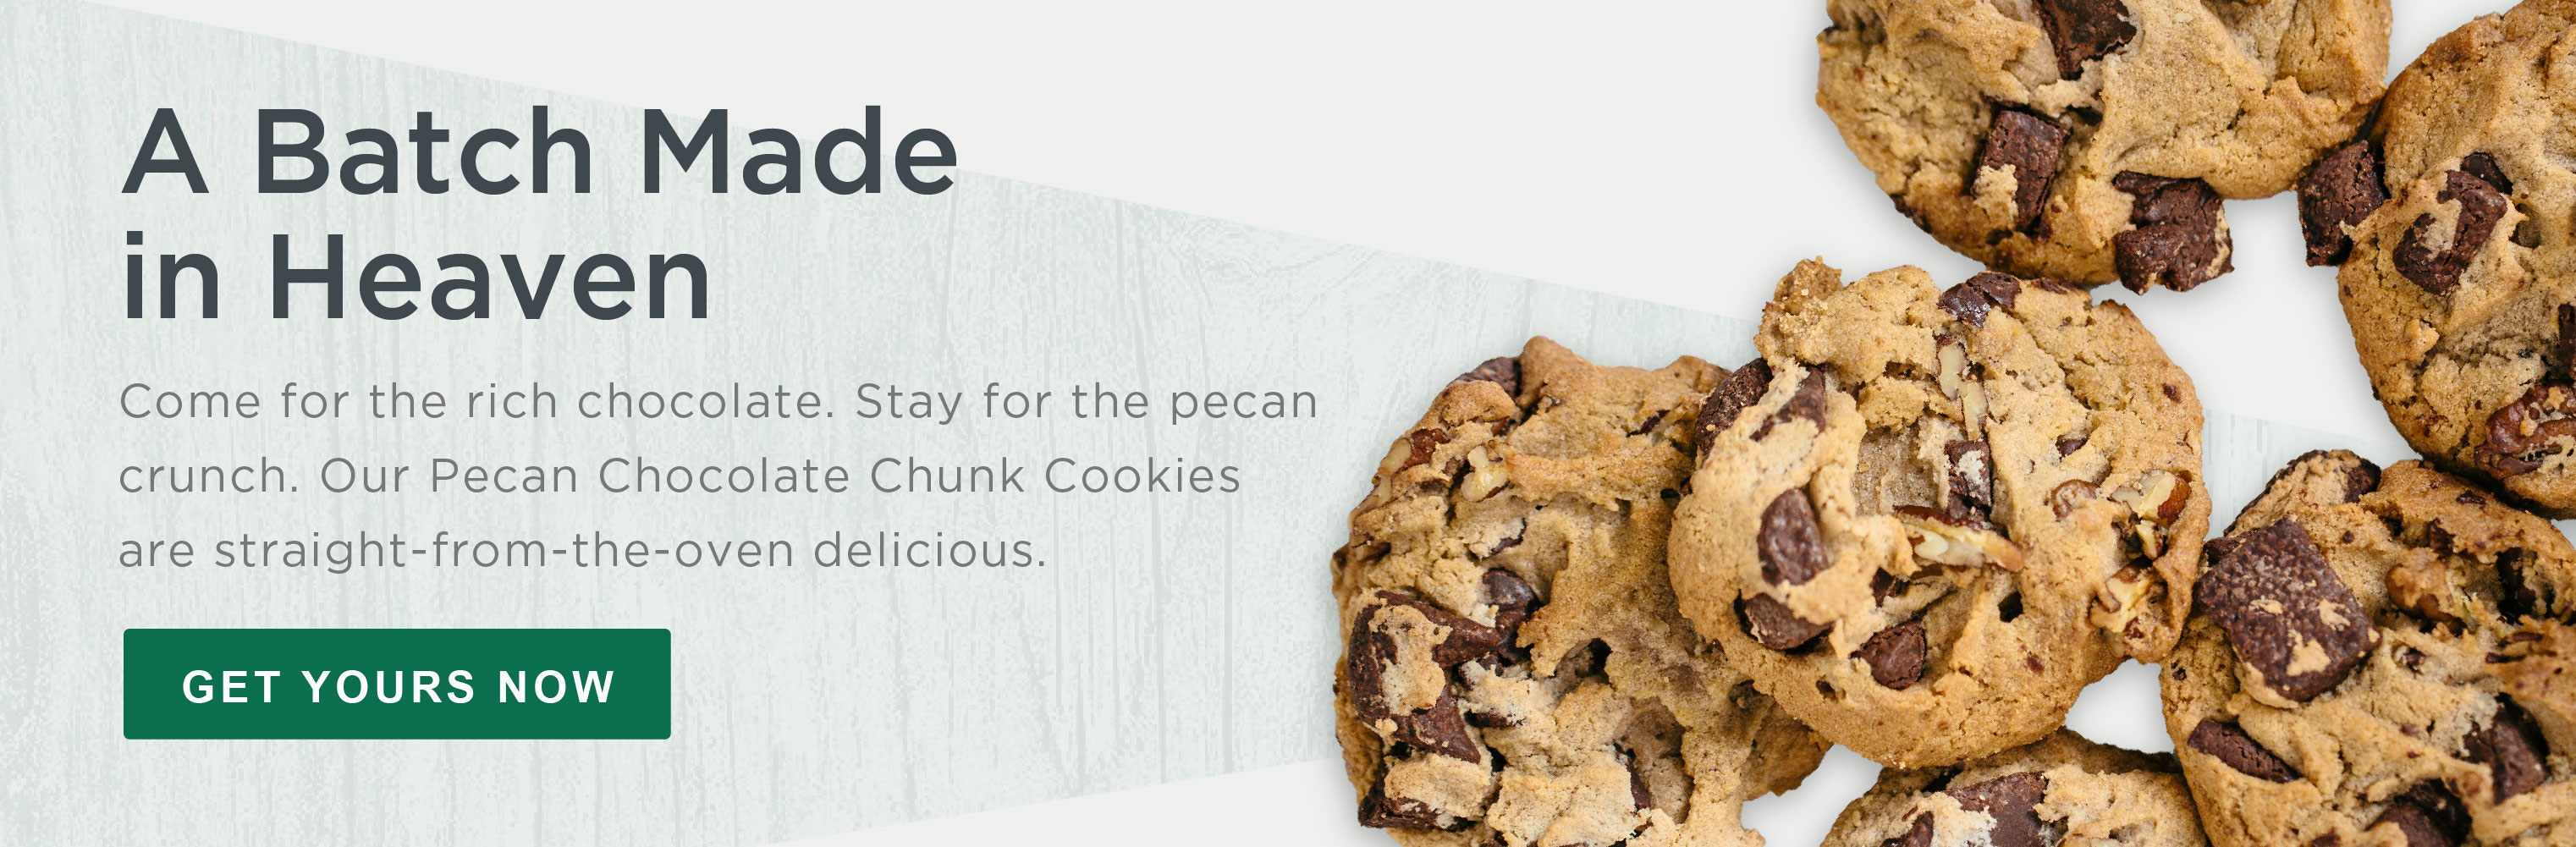 Come for the rich chocolate. Stay for the pecan crunch. Our Pecan Chocolate Chunk Cookies are straight-from-the-oven delicious. Get Yours Now»